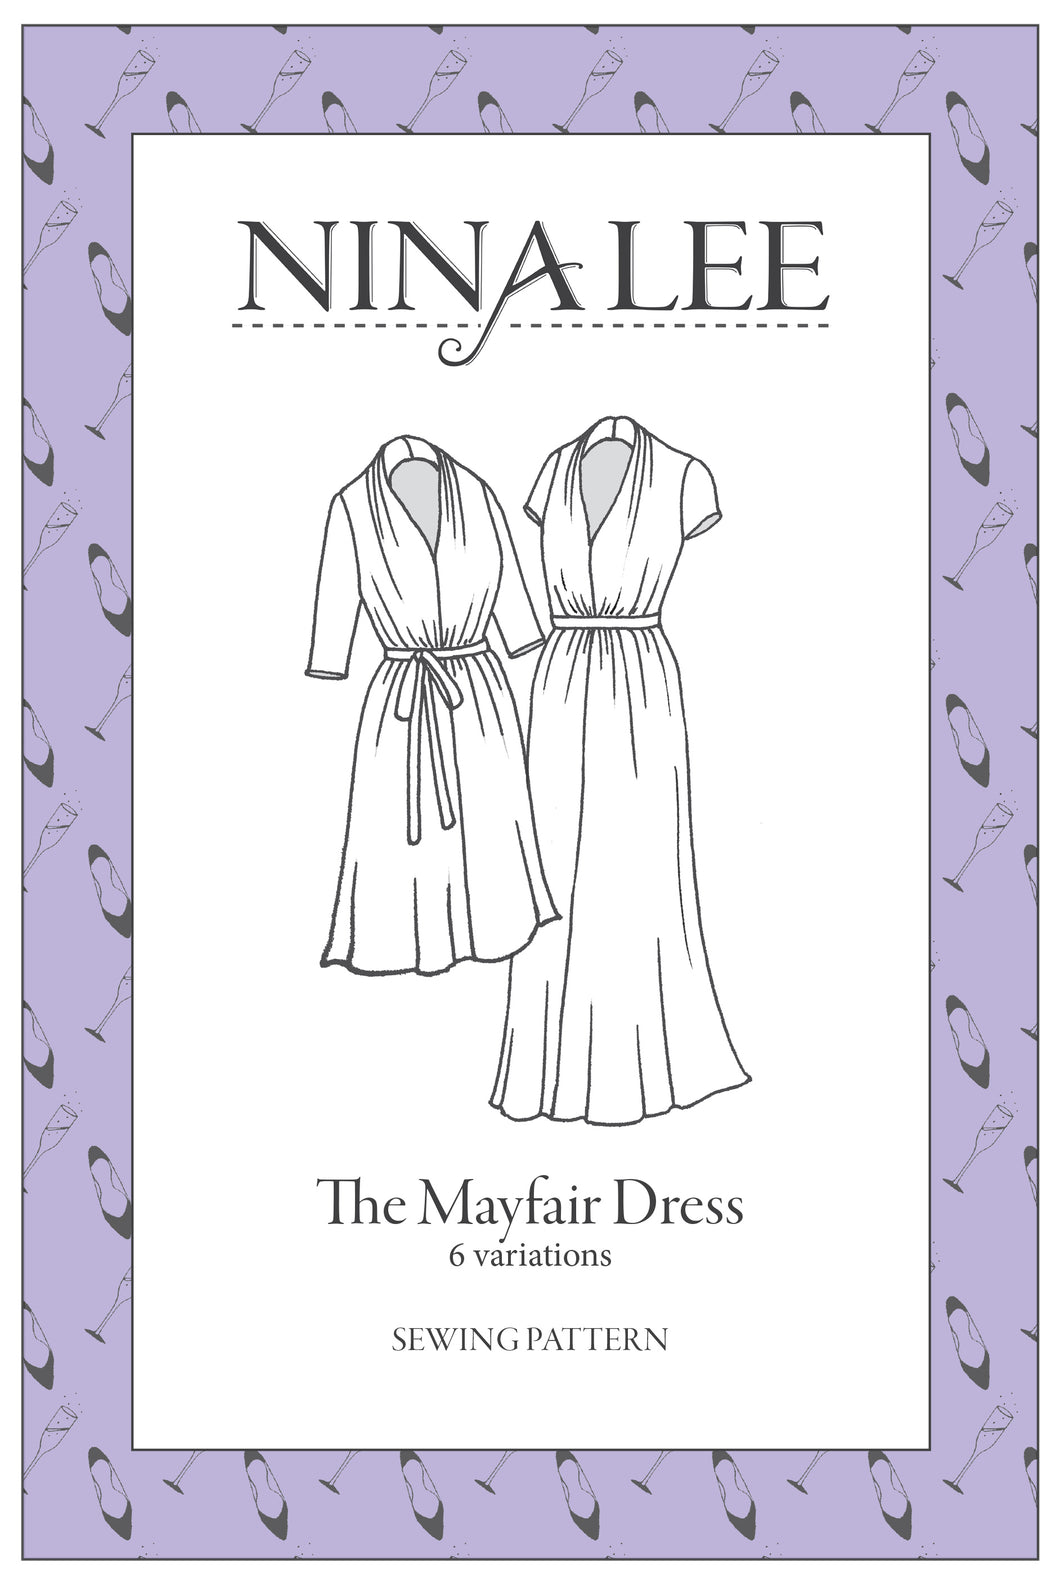 Nina Lee THE MAYFAIR DRESS